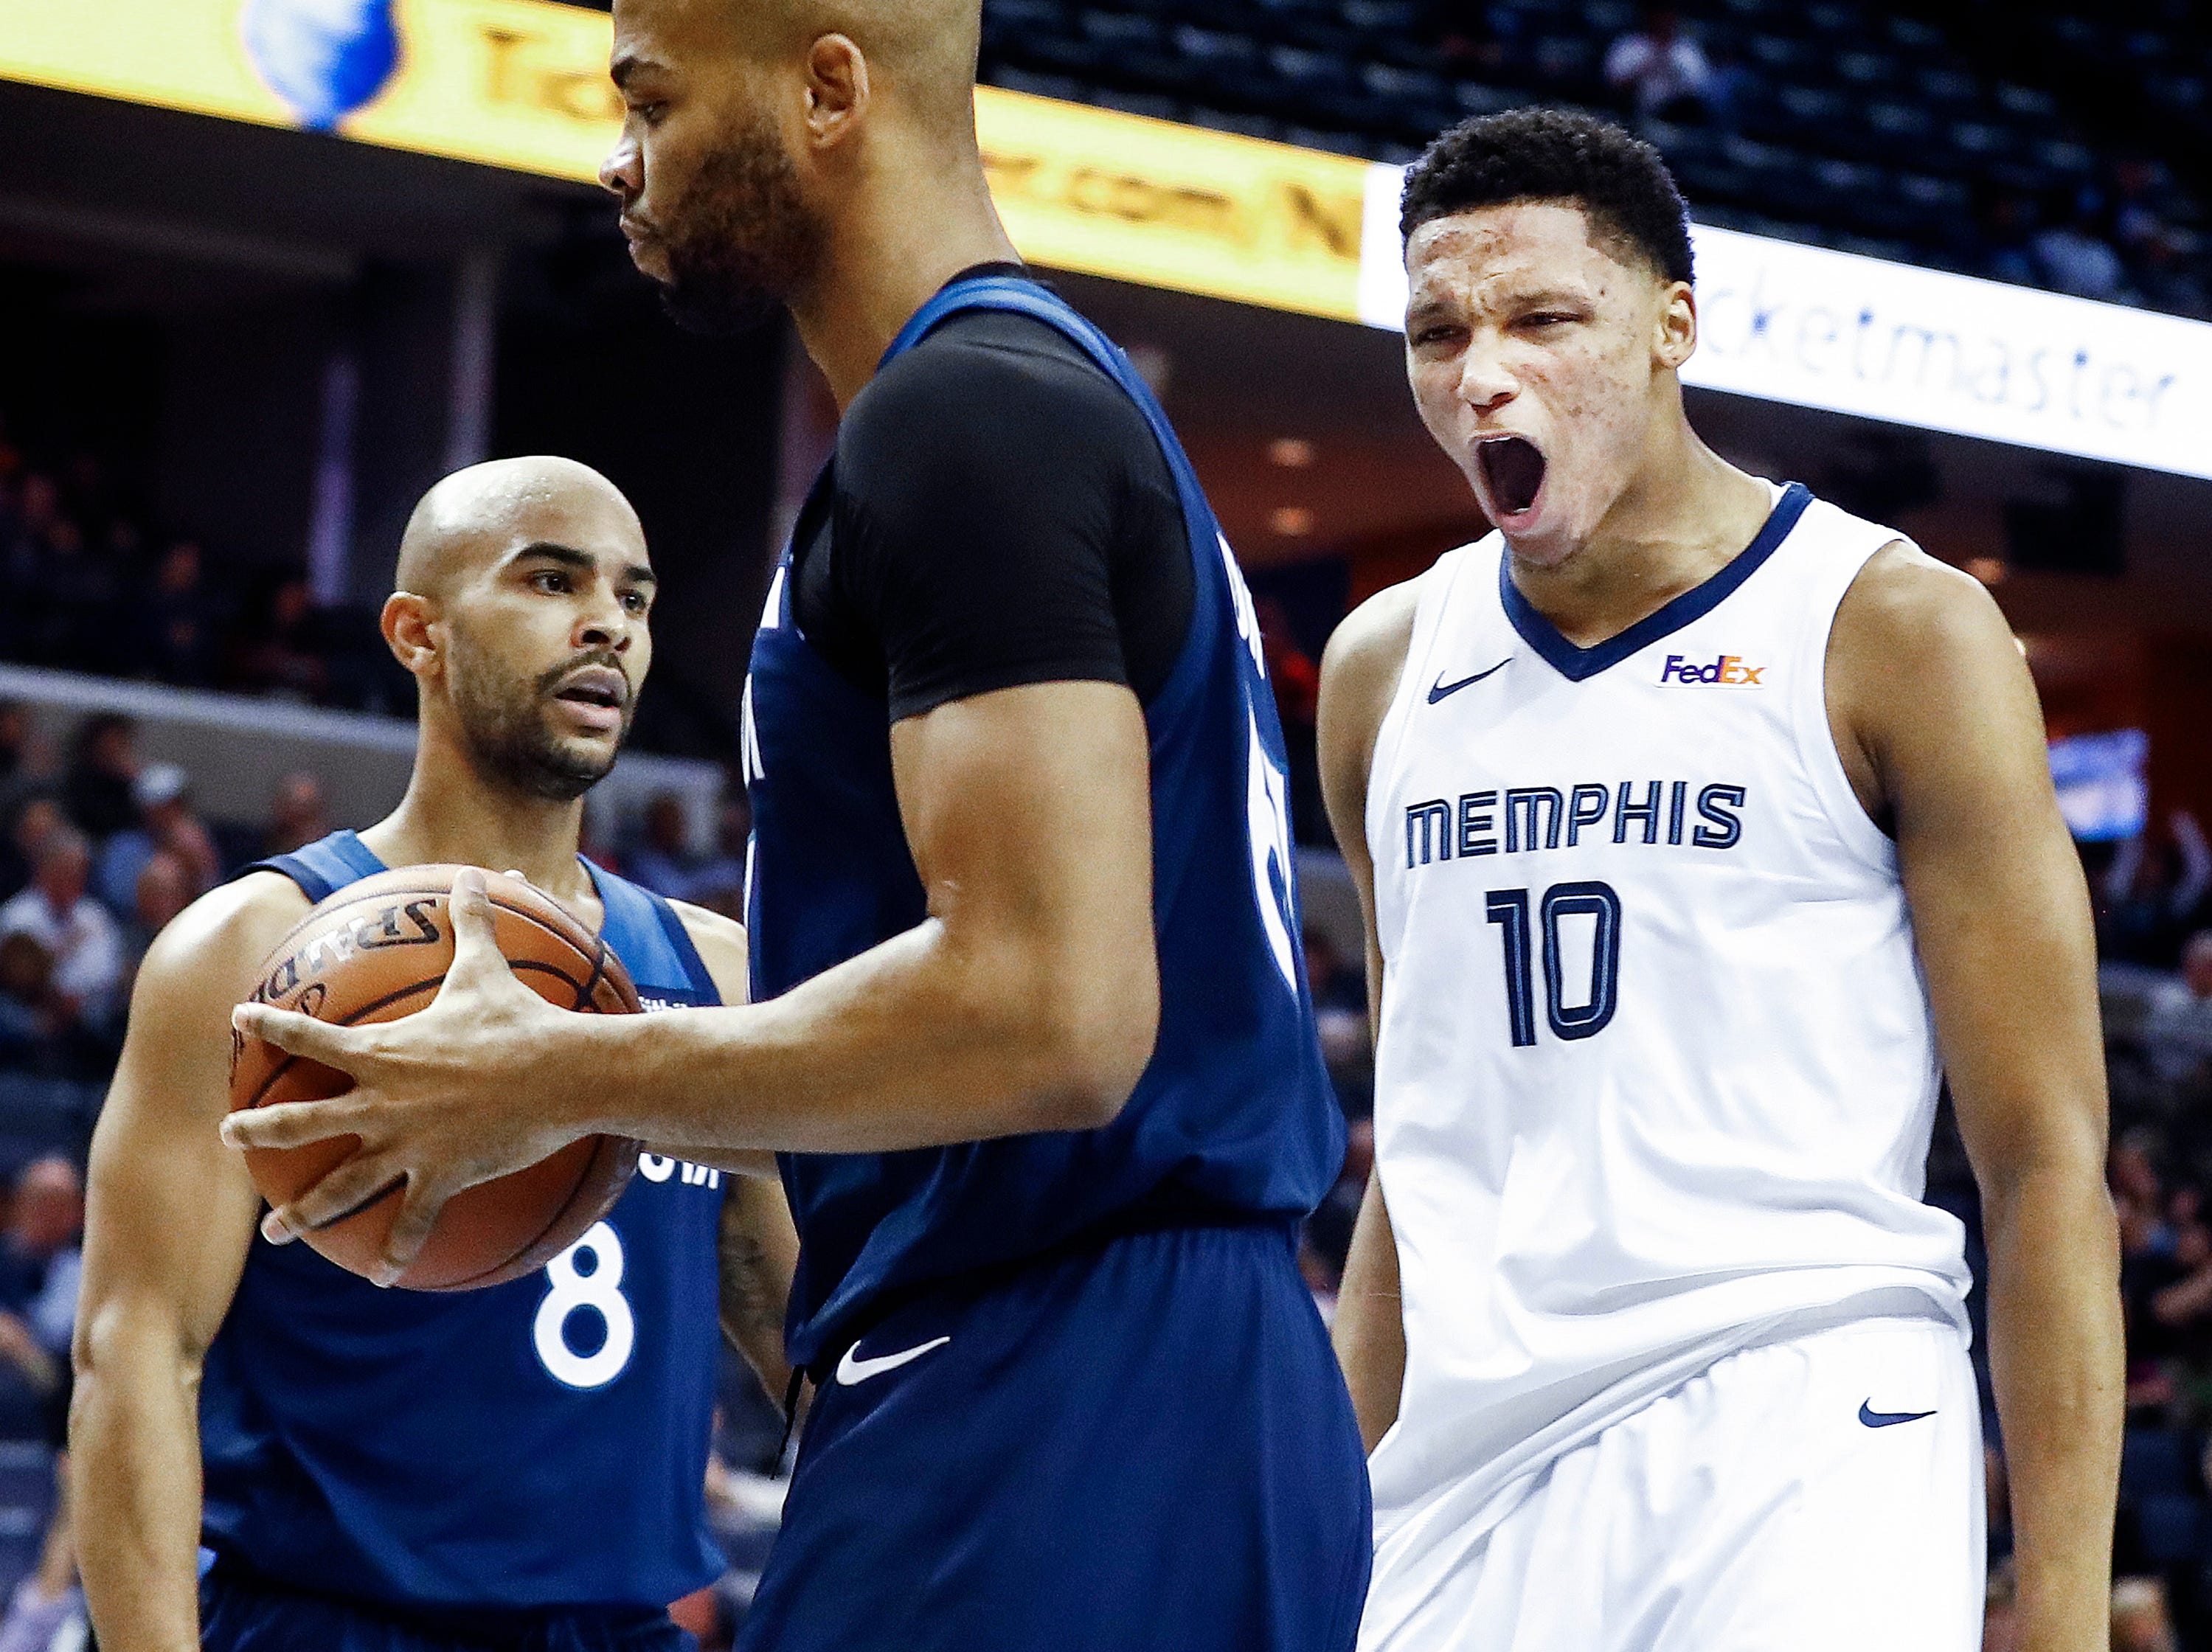 Memphis Grizzlies forward Ivan Rabb (right) celebrates in front of Minnesota Timberwolves teammates Taj Gibson (middle) and Isaiah Canaan (left) after a made basket during first quarter action at the FedExForum in Memphis, Tenn., Tuesday, February 5, 2019.